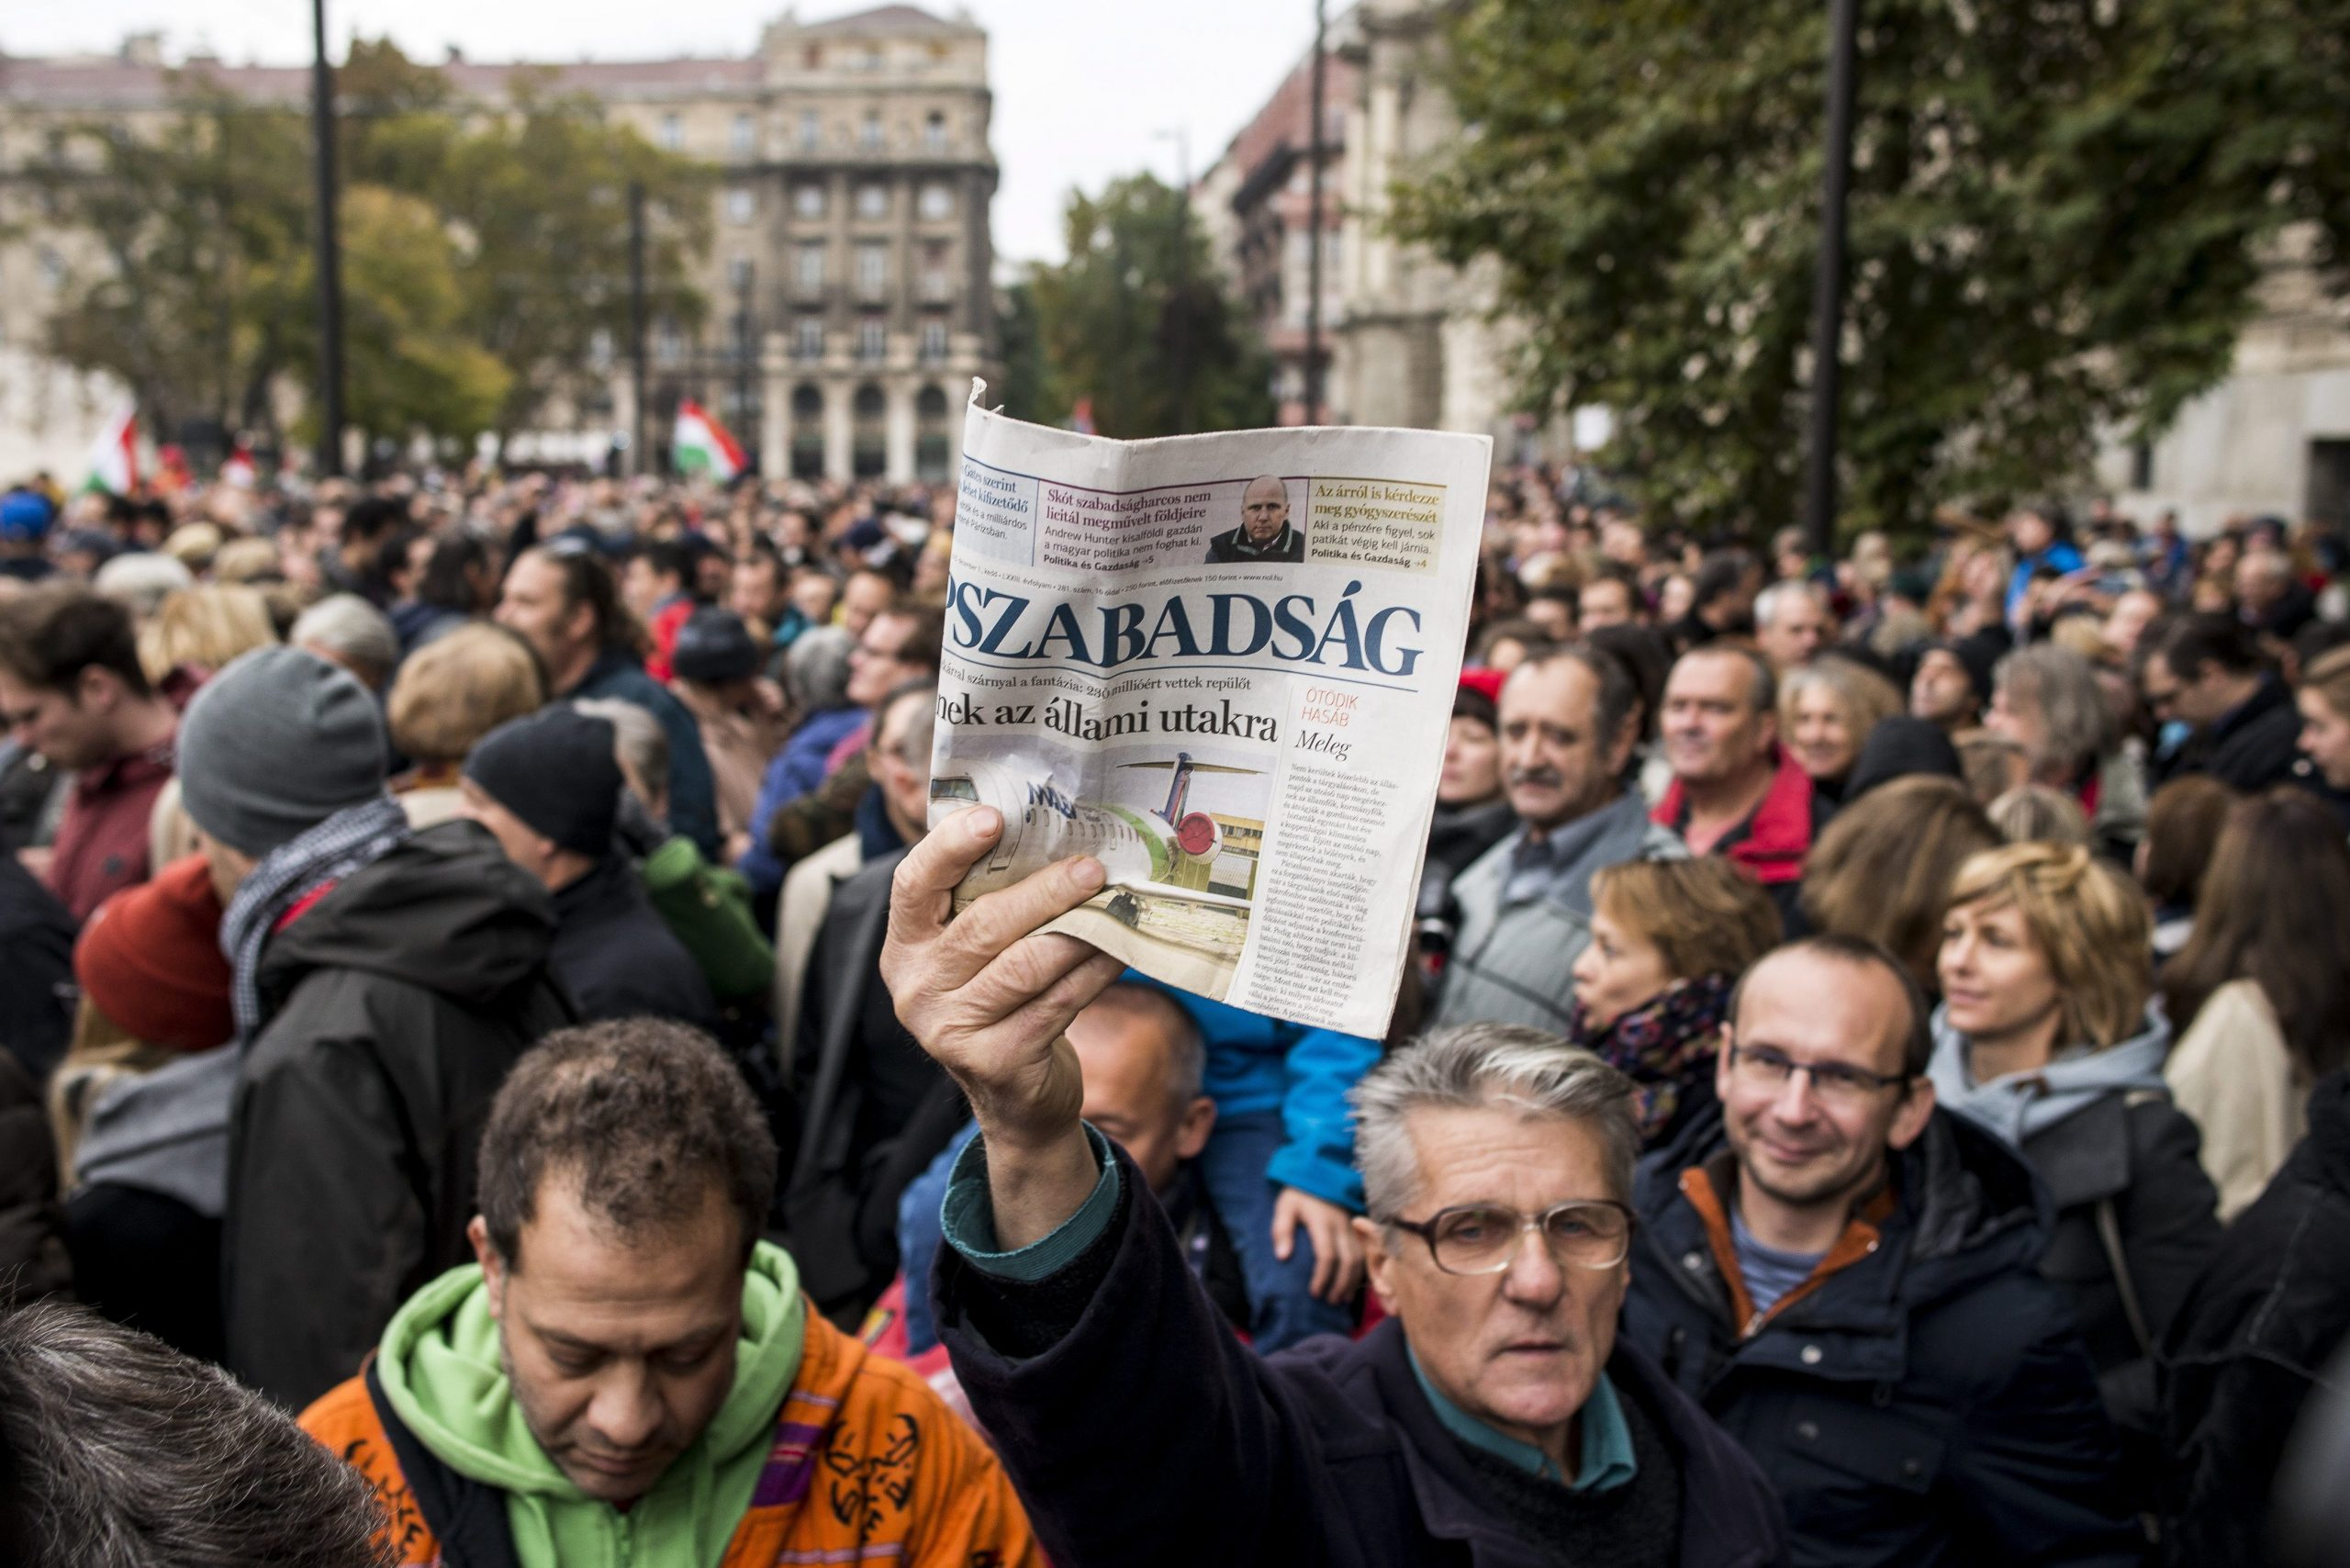 CoE Commissioner Calls on Hungary to 'Restore' Press Freedom